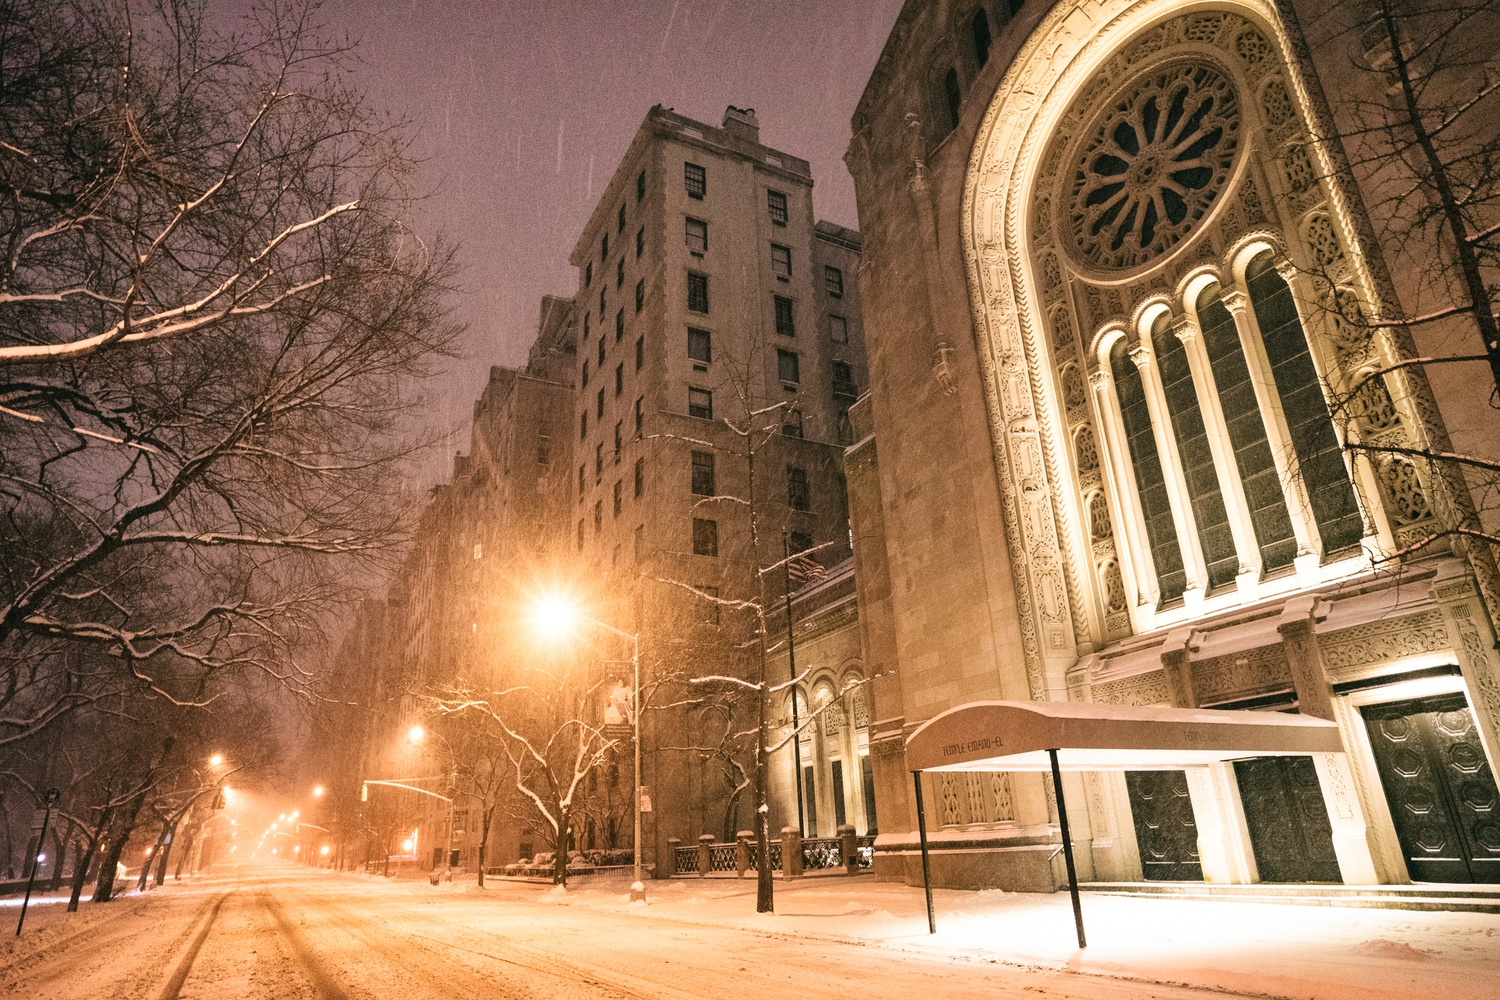 "New York City - Snow - Winter Storm Juno - Empty 5th Avenue - Temple Emanu-el | Juno: The first snowstorm of 2015 in New York City.  ---  (Note: My <a href=""http://www.amazon.com/gp/product/1440339589/ref=as_li_tl?ie=UTF8&camp=1789&creative=9325&creativeASIN=1440339589&linkCode=as2&tag=nyththle0e-20&linkId=ER6GYT5FRYNMEPLF"" rel=""nofollow"">New York photography book</a> released worldwide in stores/online recently and has photos similar to this  [full info below])  ---  I have been photographing New York City during snowstorms at night for the past 5 years. When it comes to experiencing <a href=""http://nythroughthelens.com/tagged/snow"" rel=""nofollow"">New York City in the snow</a>, I relish the challenge. The more gusty, snowy, and brutal the storm, the more of a chance that I will be out in it traipsing around New York City with my cameras in tow.  When I heard that the MTA was suspending all transit service (and most vehicles) at 11 pm, I made the decision to take the train up to the Upper East Side prior to 11 pm to deposit myself up there with the intention of walking from the Upper East Side to Times Square and then walking the several miles back to the Lower East Side (whew!!).  The streets were eerily empty.  Emptier than they are usually at night during snowfall. Since there was a ban on all vehicles aside from snow plows and emergency services, there were practically no cars at all on the streets. Even taxis were banned from the streets!  I walked in the middle of avenues and streets that are usually teeming with cars.  There was an eerie sense of calm.  It was magical.   ---  This is part of a post that I posted to my NYC photography blog. If you are curious enough to look at the photos there, here is the link to the post:  <a href=""http://nythroughthelens.com/post/109291619025/new-york-city-snow-winter-storm-juno-i"" rel=""nofollow"">New York City - Winter Storm Juno</a>   ----  * As mentioned above - My New York City coffee table book that released in stores/online worldwide recently.   Tons of information about my <a href=""http://www.amazon.com/gp/product/1440339589/ref=as_li_tl?ie=UTF8&camp=1789&creative=9325&creativeASIN=1440339589&linkCode=as2&tag=nyththle0e-20&linkId=ER6GYT5FRYNMEPLF"" rel=""nofollow"">New York photography book</a> with sample pages (including where to order and what stores are carrying it) here:  <a href=""http://nythroughthelens.com/post/92873566010/ny-through-the-lens-the-book-i-am-super"" rel=""nofollow"">NY Through The Lens: A New York Coffee Table Book</a> ---   View my New York City photography at my website <a href=""http://nythroughthelens.com/"" rel=""nofollow"">NY Through The Lens</a>.  View my Travel photography at my travel blog: <a href=""http://travelinglens.me/"" rel=""nofollow"">Traveling Lens</a>.  Interested in my work and have questions about PR and media? Check out my:  <a href=""http://nythroughthelens.com/about"" rel=""nofollow"">About Page</a> 